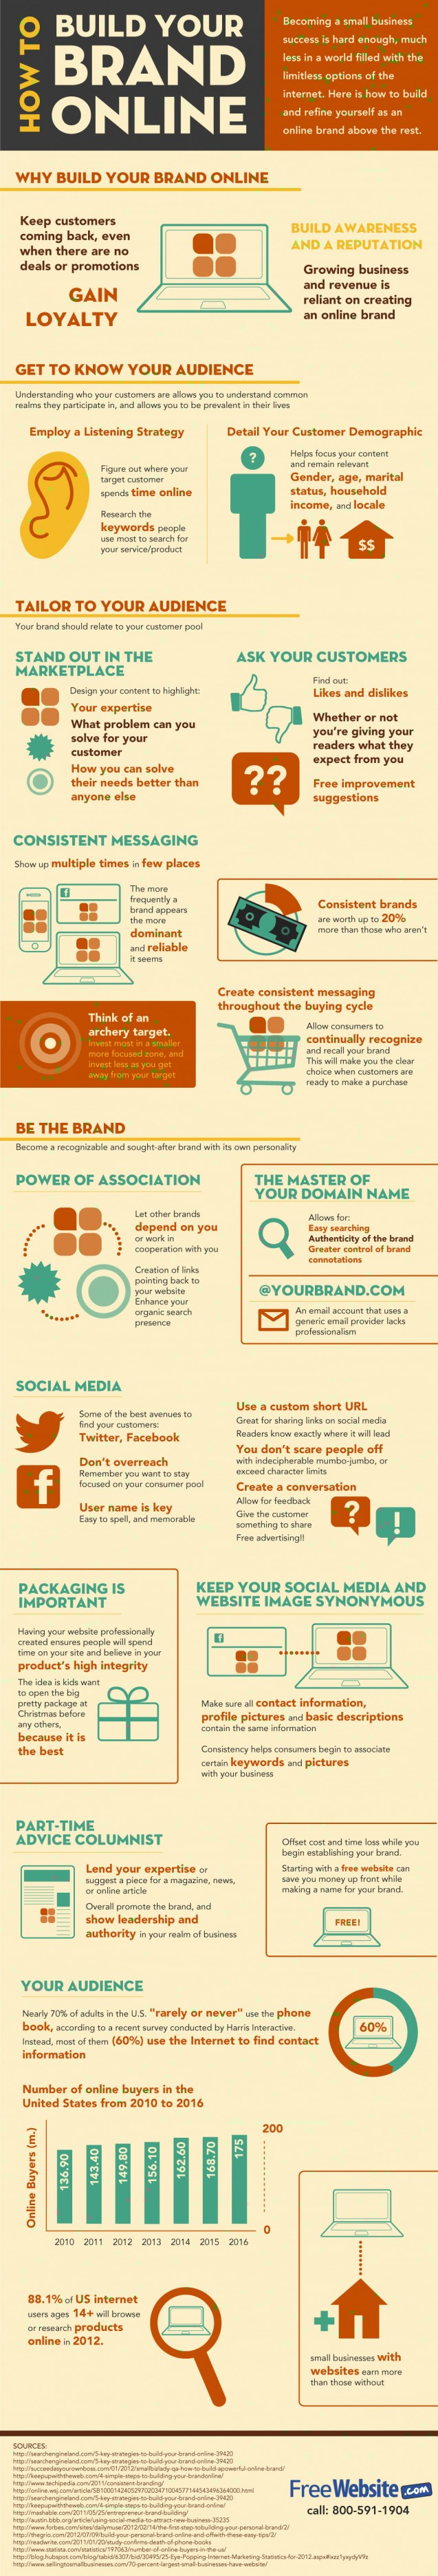 Why You Need to Build Your Brand Online image brand online 637x37442